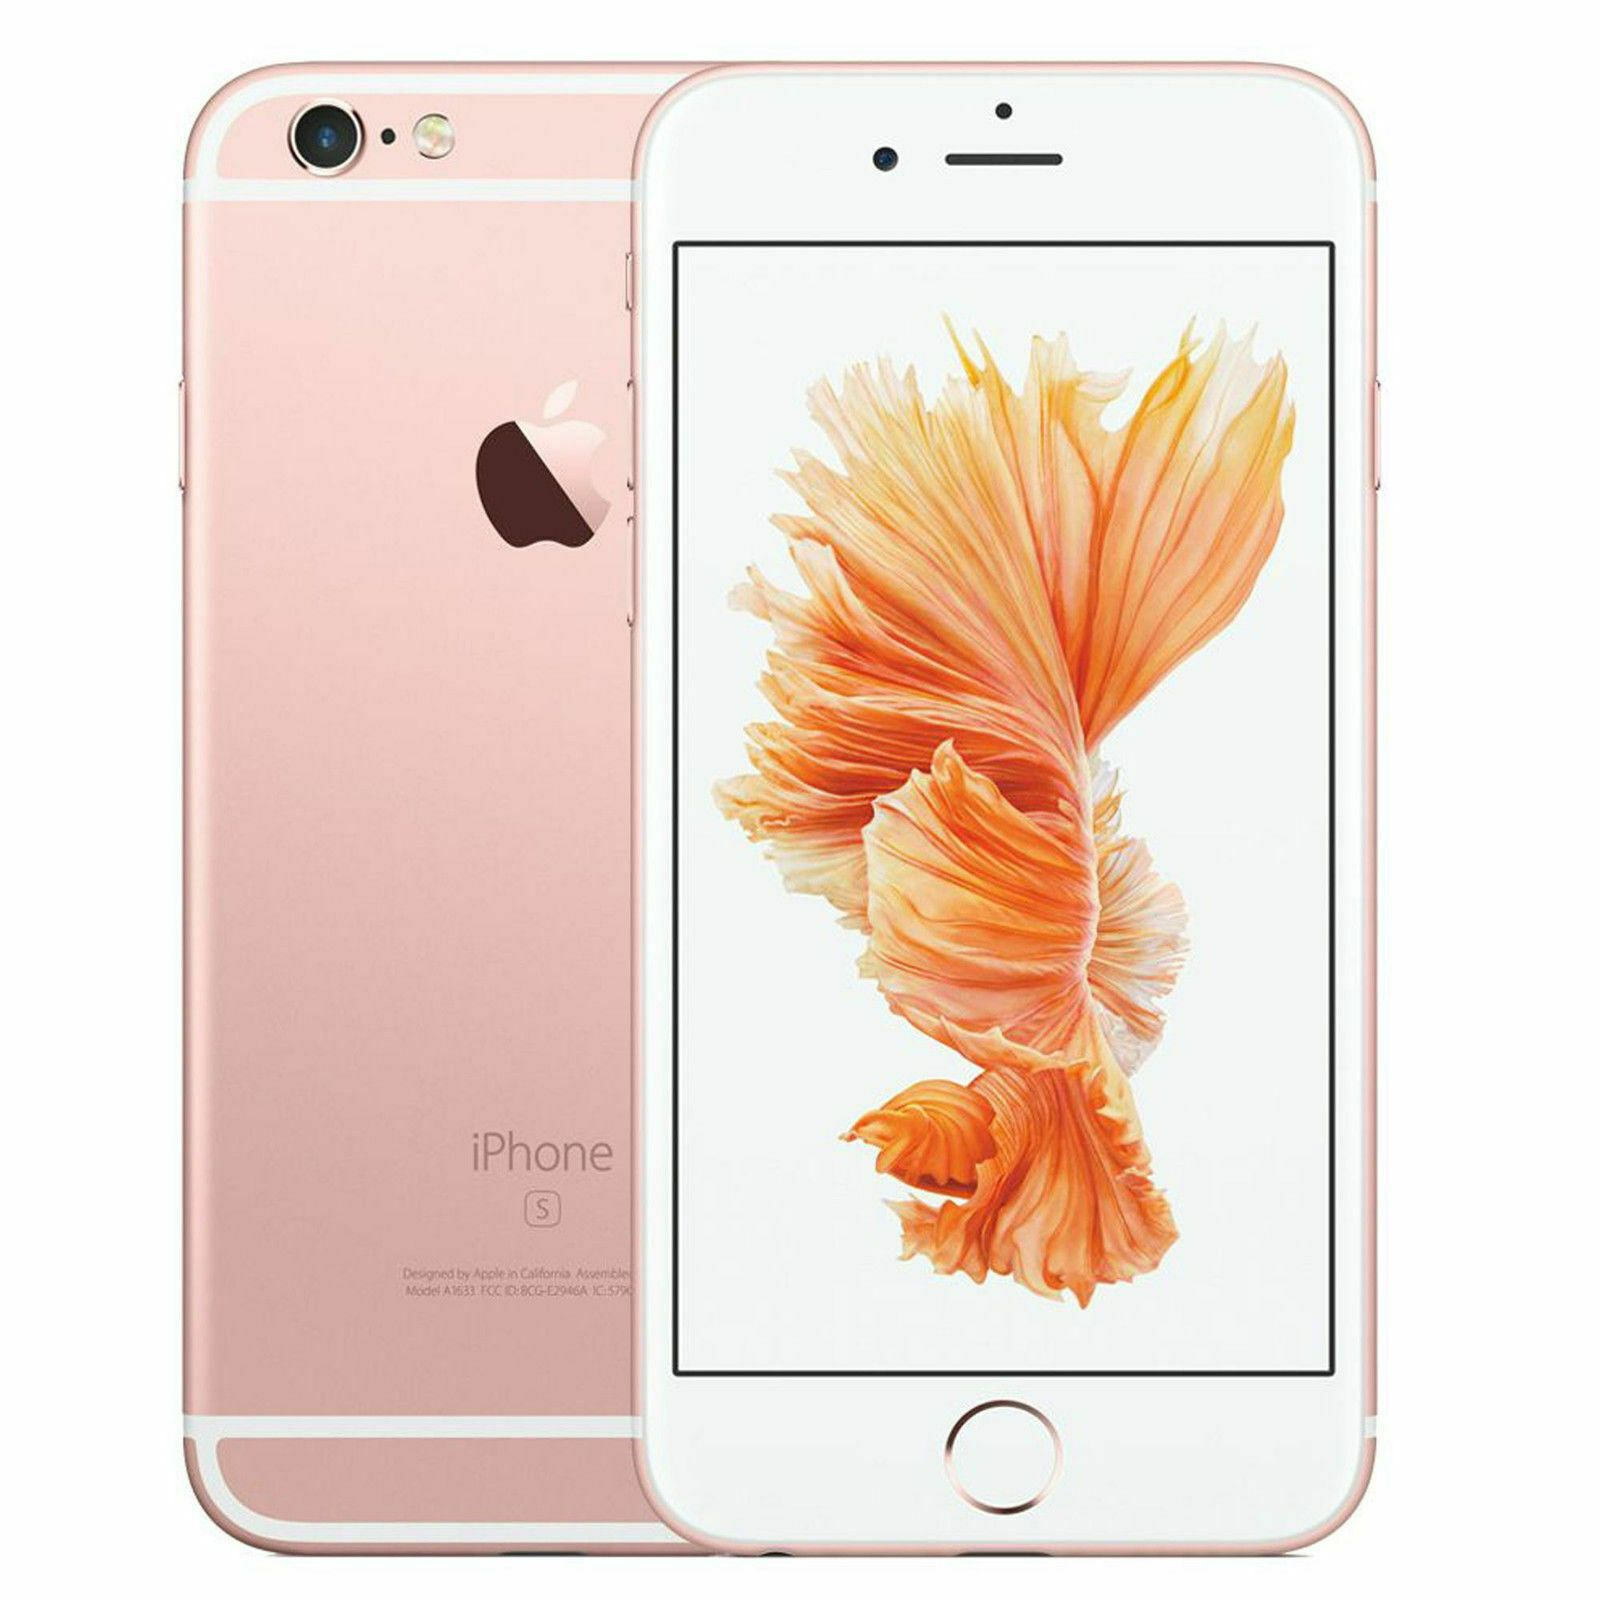 Apple Iphone 6s 16gb Rose Gold Sprint A1688 Icloud Account